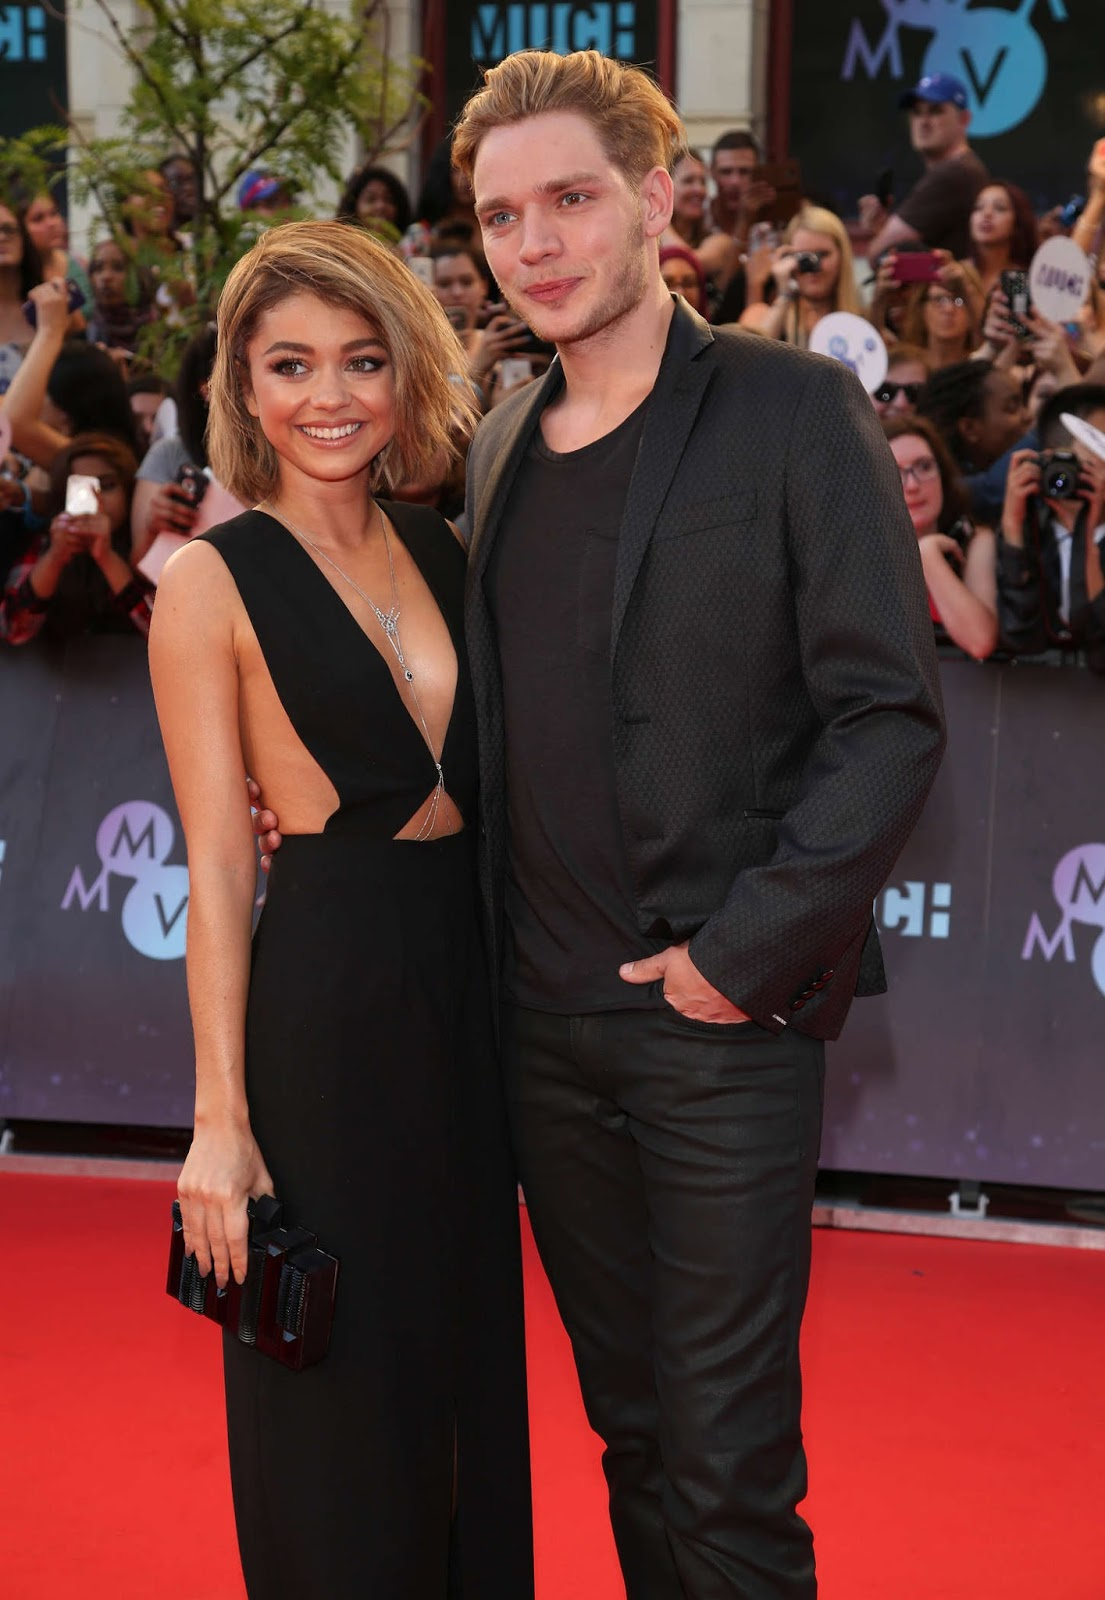 Hyland and Dominic Sherwood walk the red carpet